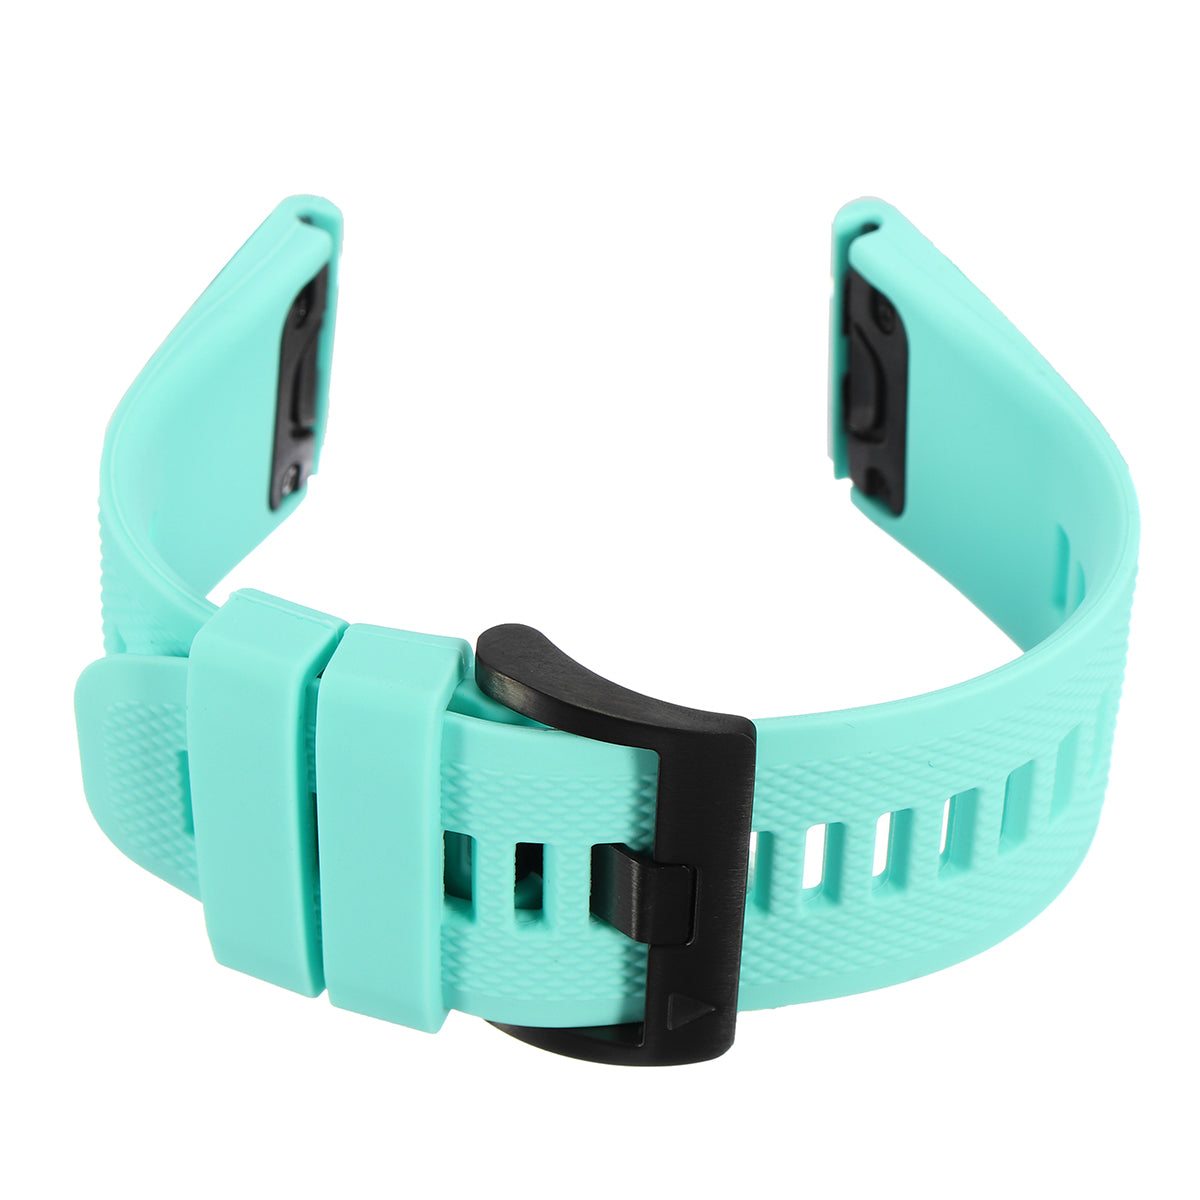 Garmin 26mm Replacement Silicone Wristband Watchband Strap Bracelet For Garmin Fenix 5X